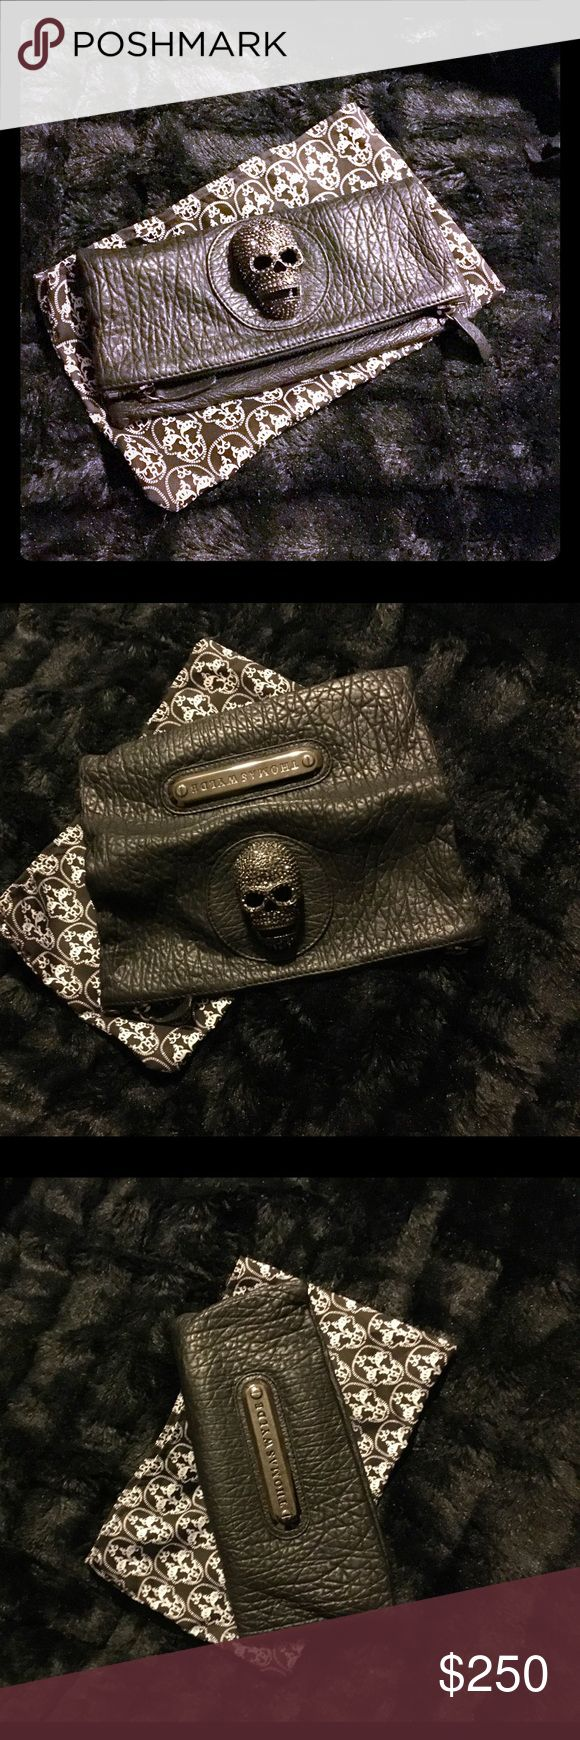 Original Thomas Wylde clutch and rhinestone skull! This is a never used designer piece. Thomas Wylde, heavy distressed leather with a huge malachite rhinestone skull. Bag includes original dust cover. Wild couture statement piece for cocktail party, runk, rock, goth, heavy metal, hipster rock n roll looks! Thomas Wylde Bags Clutches & Wristlets